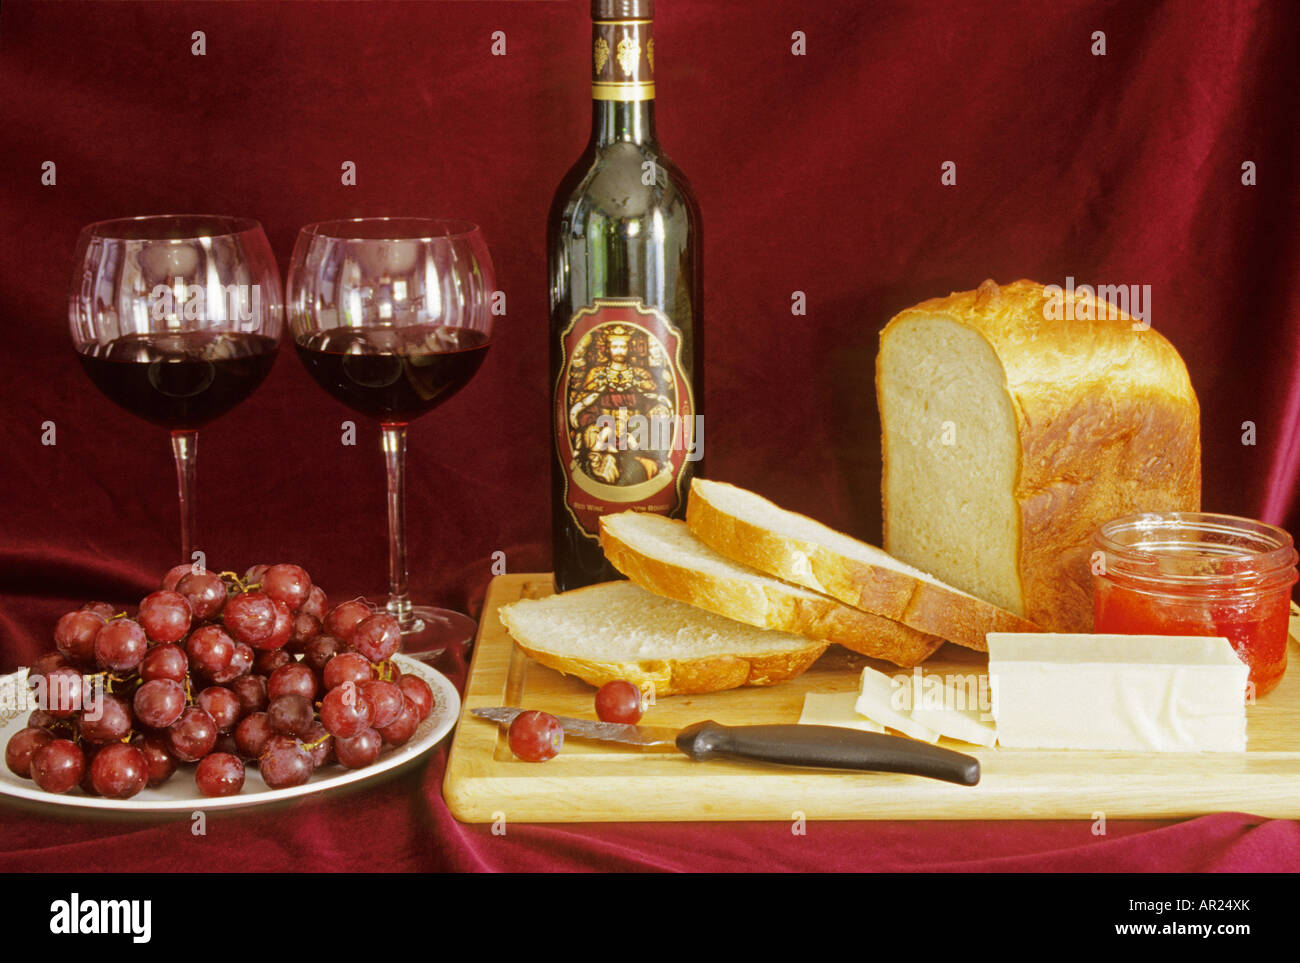 Still life table setting of bread, wine, cheese, jam, grapes - Stock Image